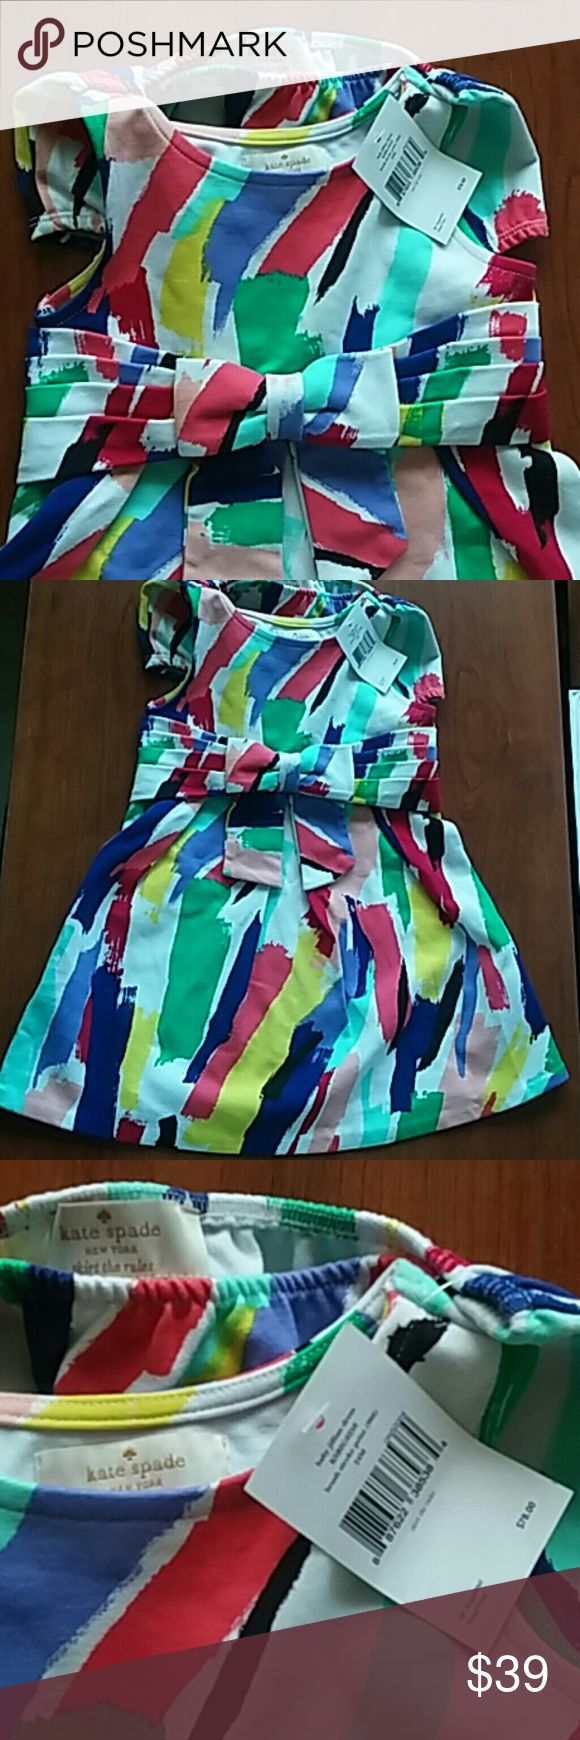 New Kate Spade Jillian Skirt the Rules Dress Set Brand NWT adorable little Jillian Skirt the Rules dress set by Kate Spade. Has a fun and bright paint stroke style print in pinks, blues, red, green, purple, and black on a white background with a bow on the waist. There is a tiny discoloration on one of the yellow areas (pictured) but I didn't see anything else. Super cute!  I ship the next business day. Bundle and save! kate spade Matching Sets